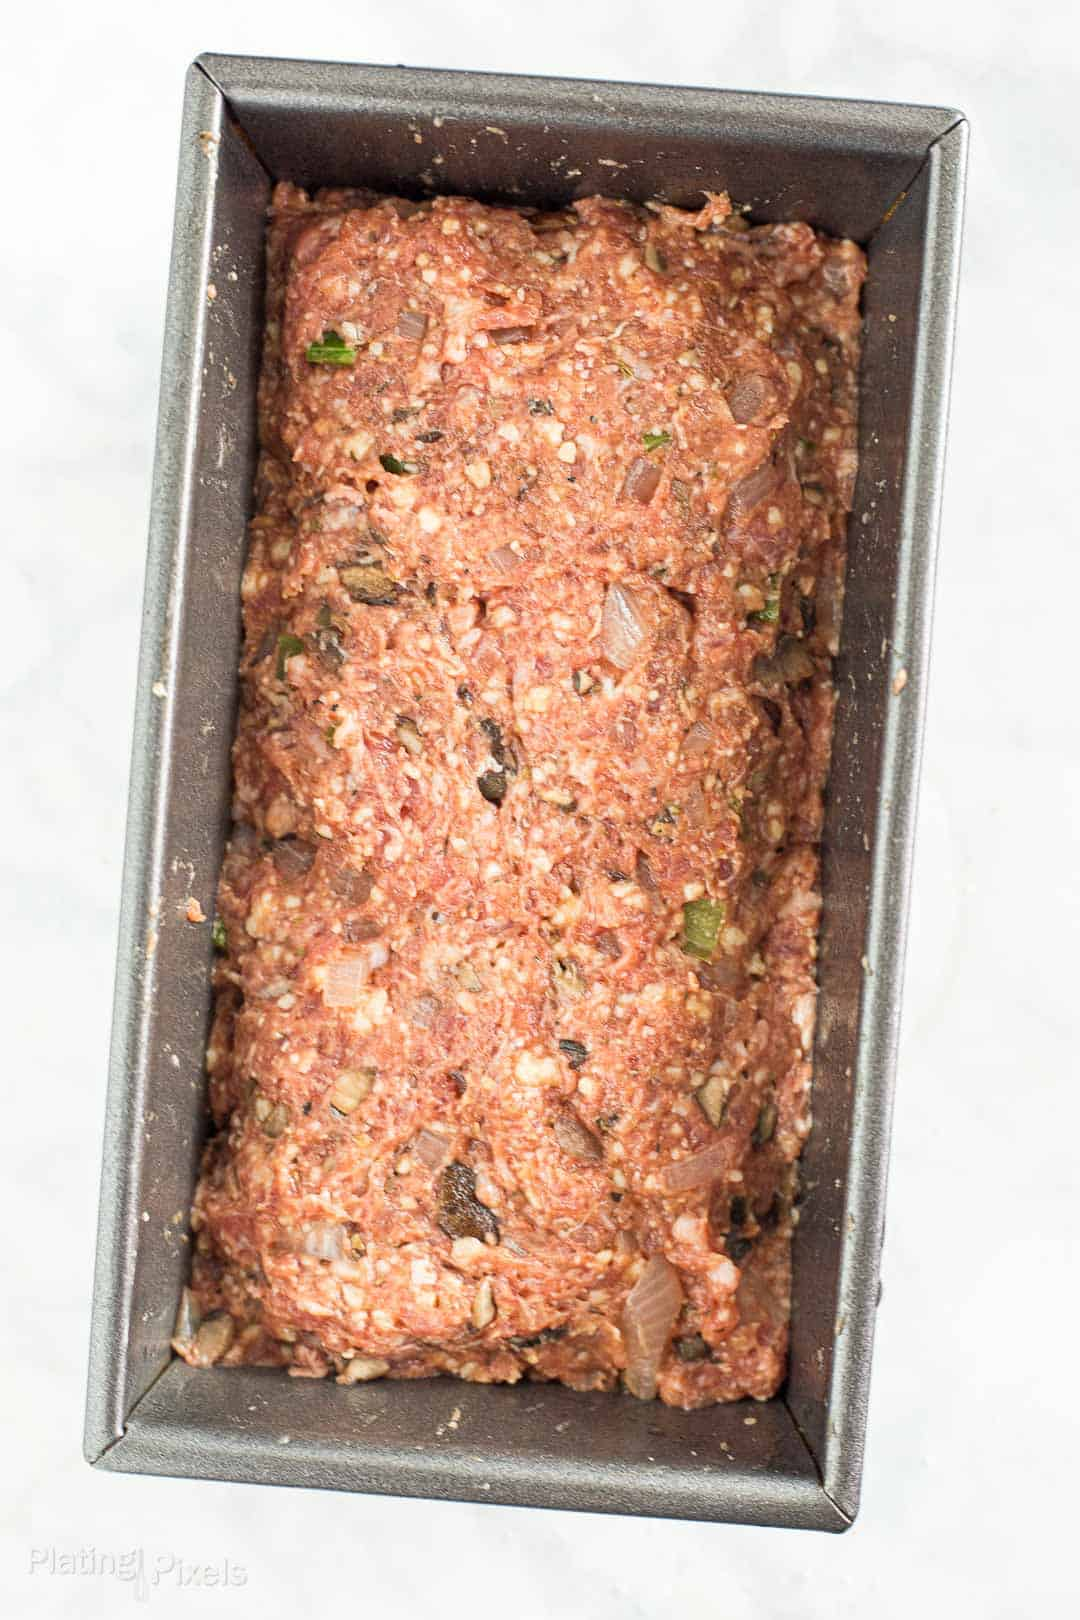 Prepared meatloaf mixture in a loaf pan ready to be baked